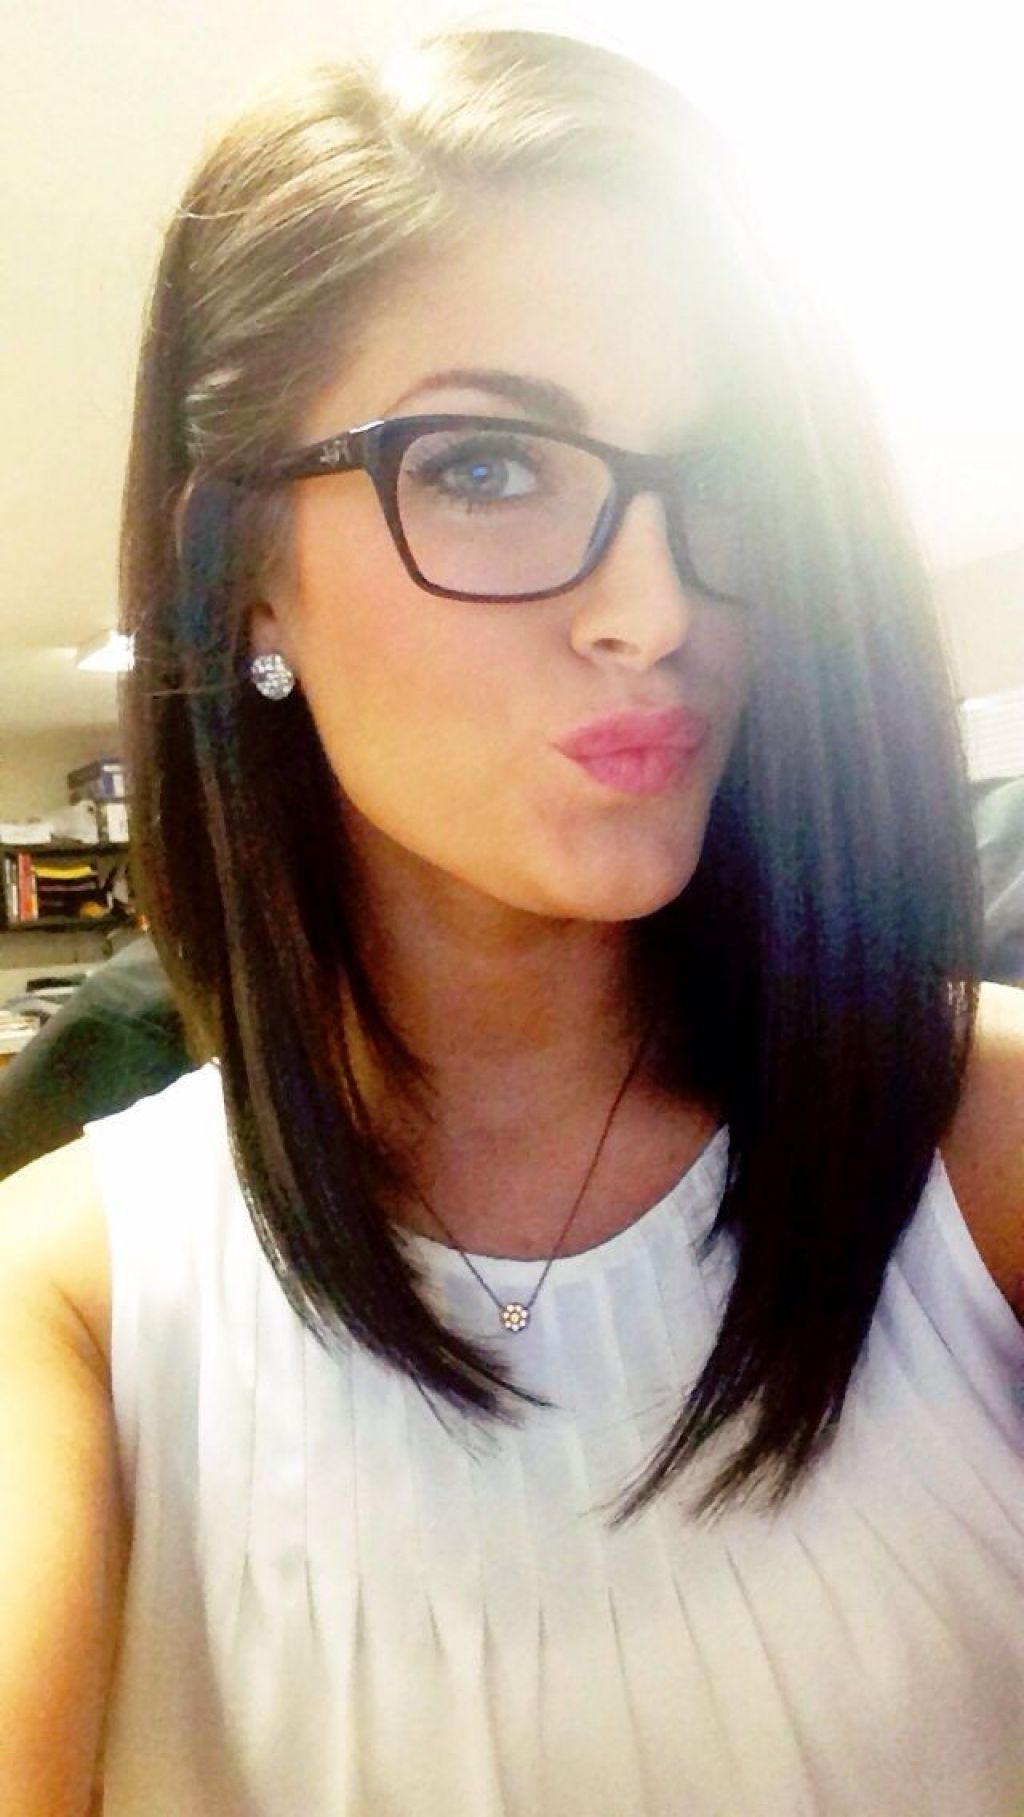 Cute Short To Medium Hairstyles – Hairstyle For Women & Man Intended For Cute Short To Medium Haircuts (View 4 of 25)